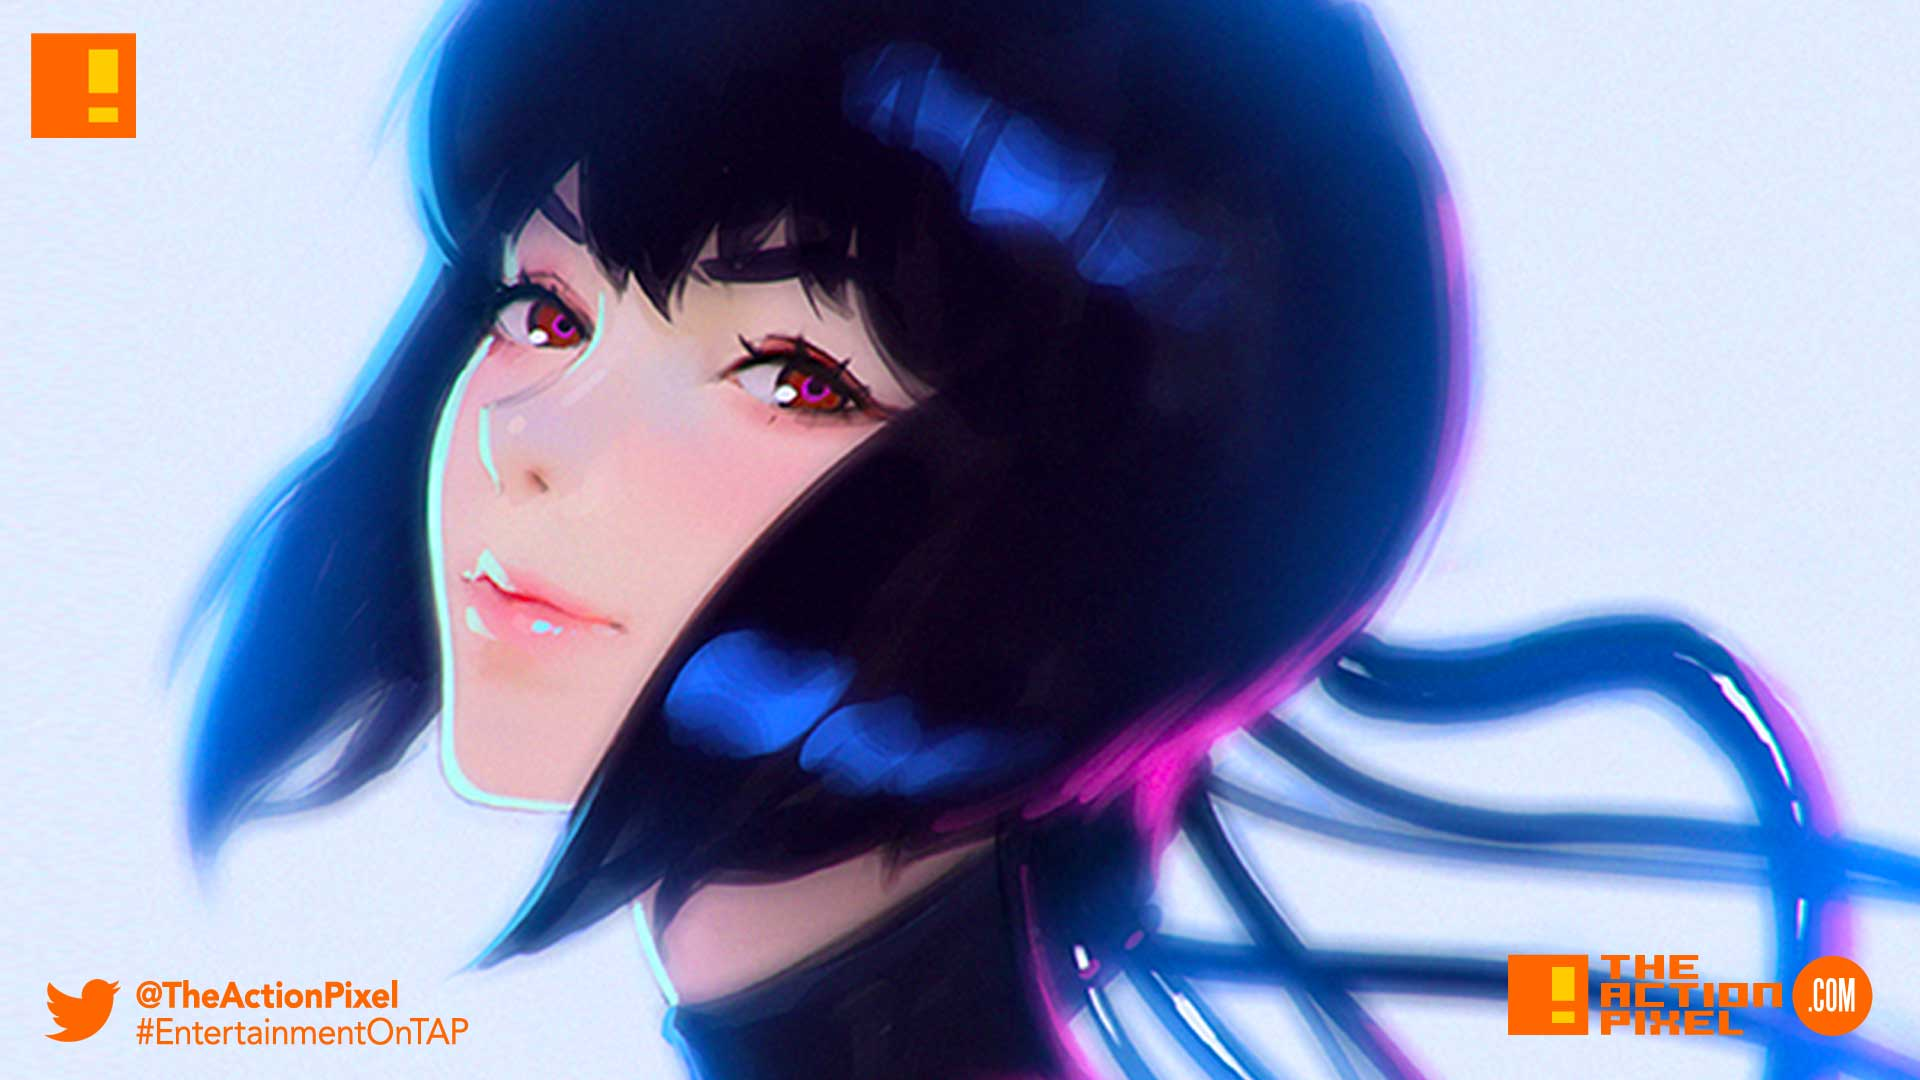 ghost in the shell, netflix, the action pixel, entertainment on tap, major,